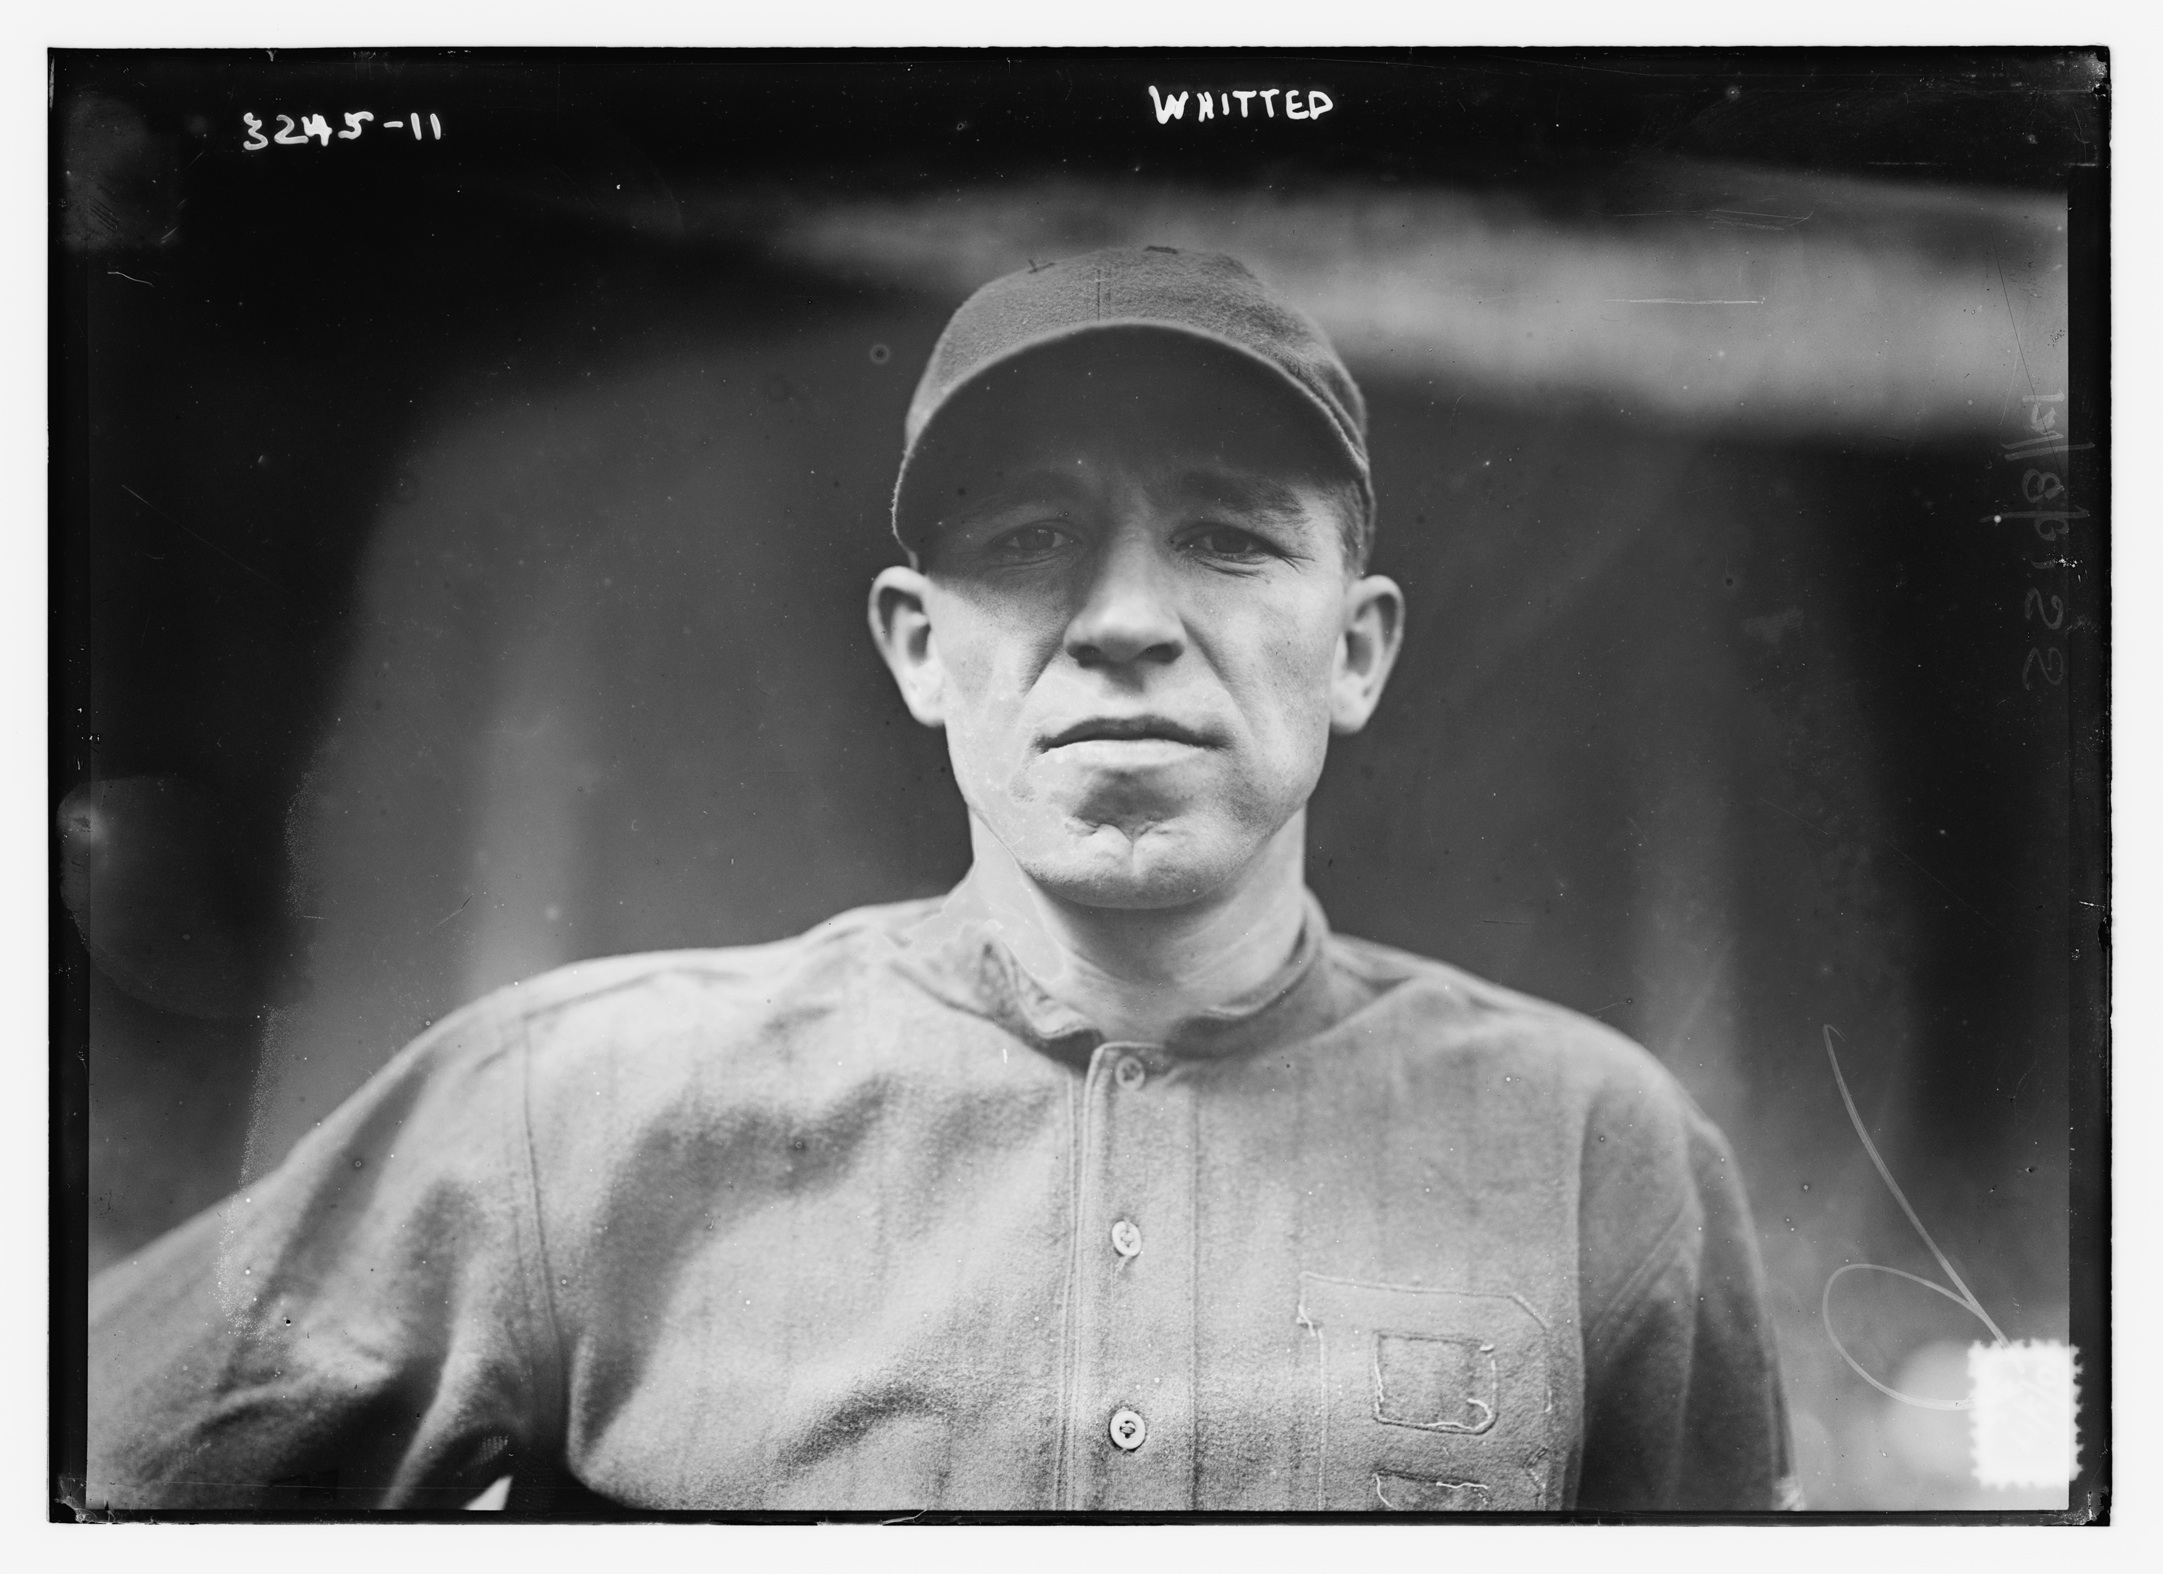 Right-handed hitting utilityman was acquired by Braves in June 1914. On the strength of 11 extra-base hits, a .293 batting average and 26 RBI in September and October, Whitted ended the season as a daily regular in George Stallings's lineup.